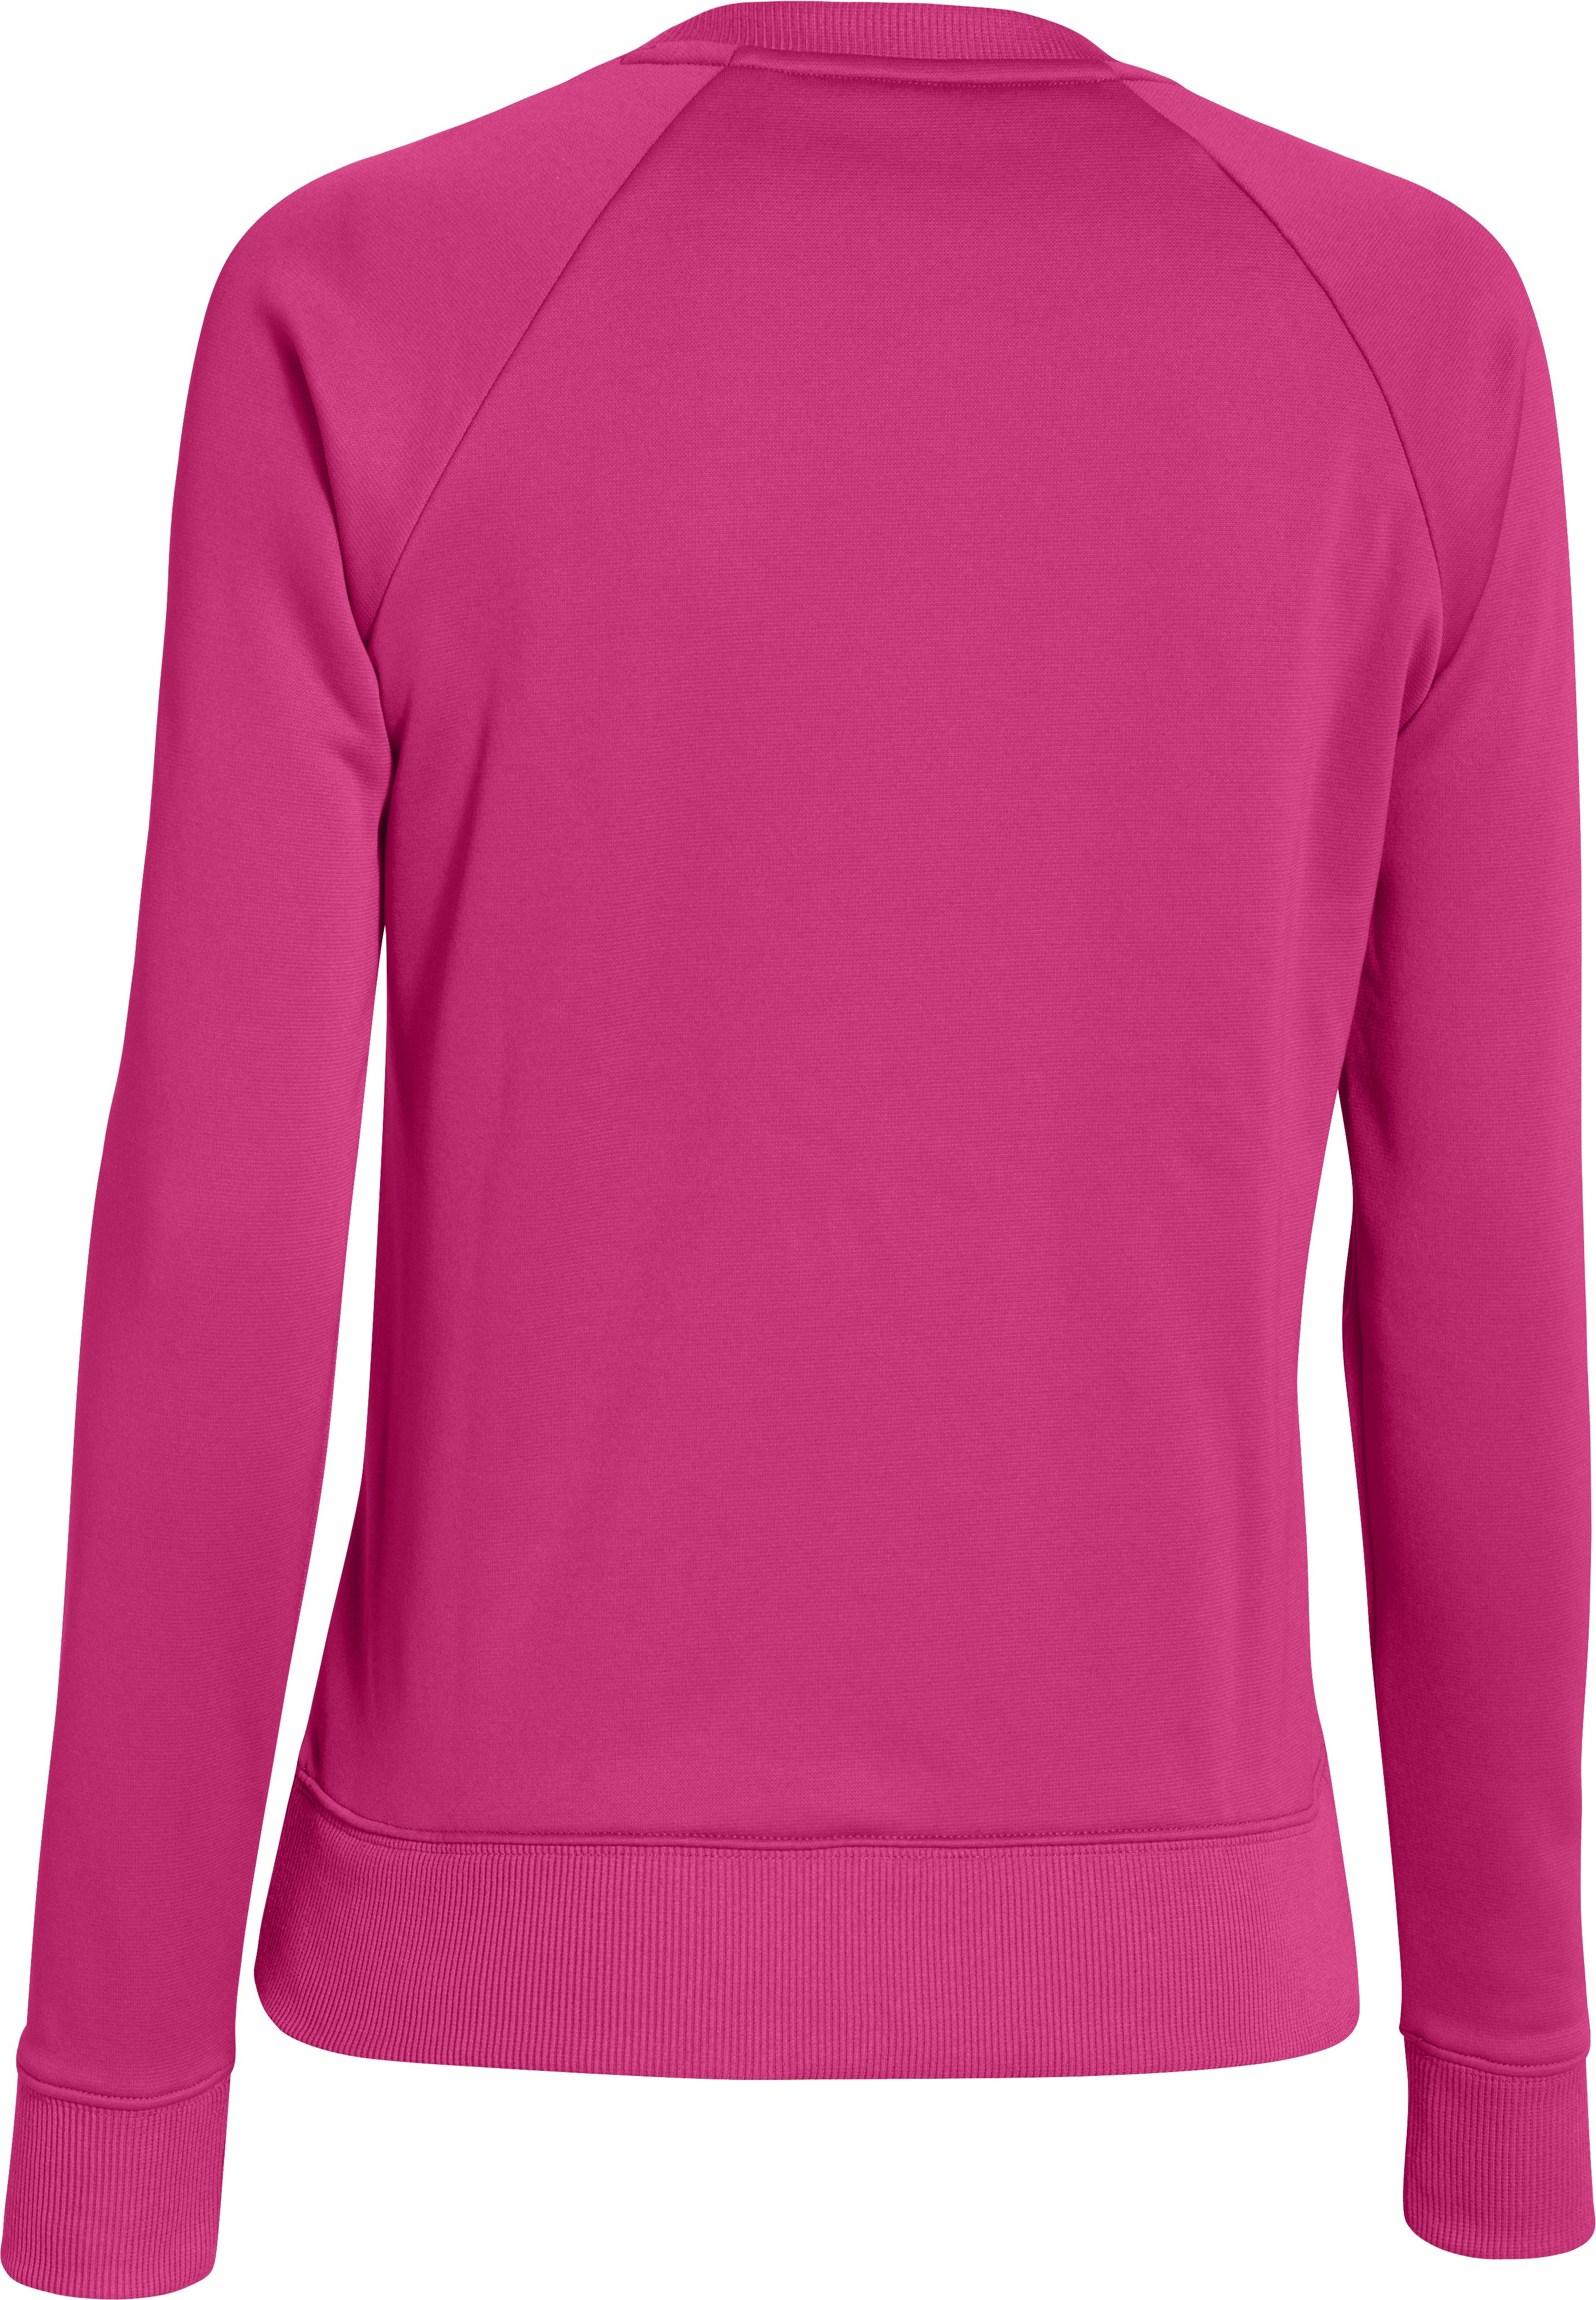 Women's UA Big Logo Letterman Crew, FUCHSIA ROSE